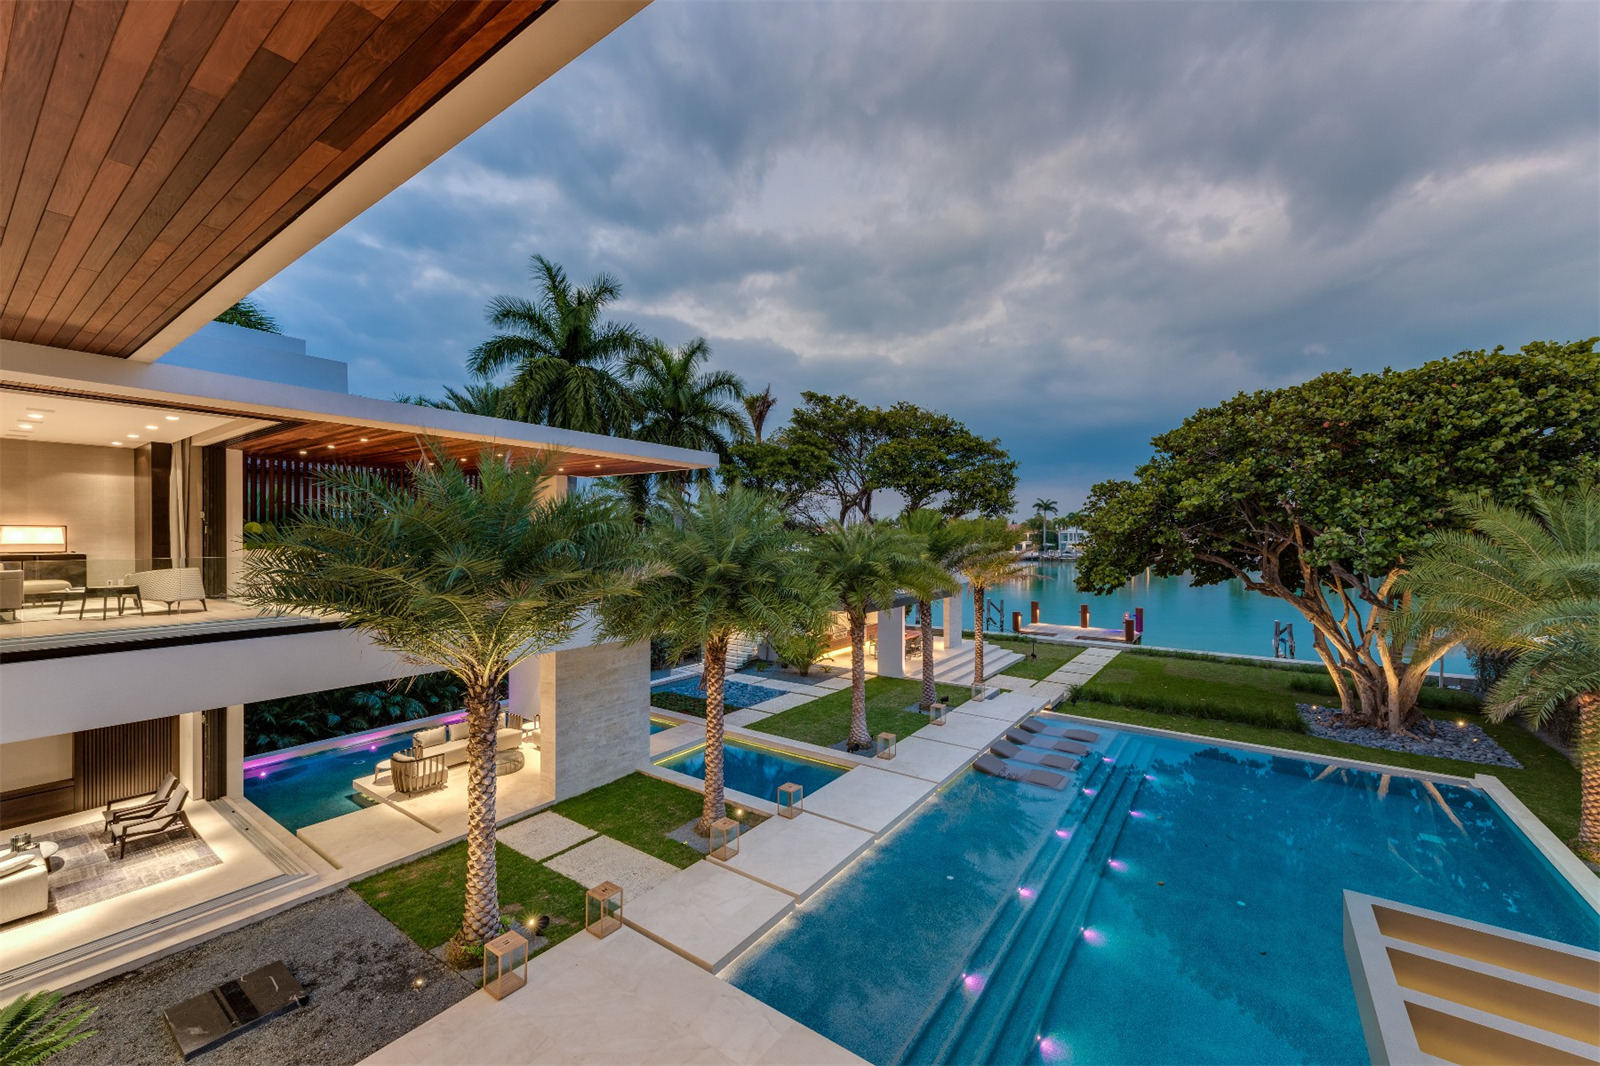 Featured Listing: Fly Through the Contemporary Palm Island Mansion With a 15' Waterfall Asking $29.5 Million